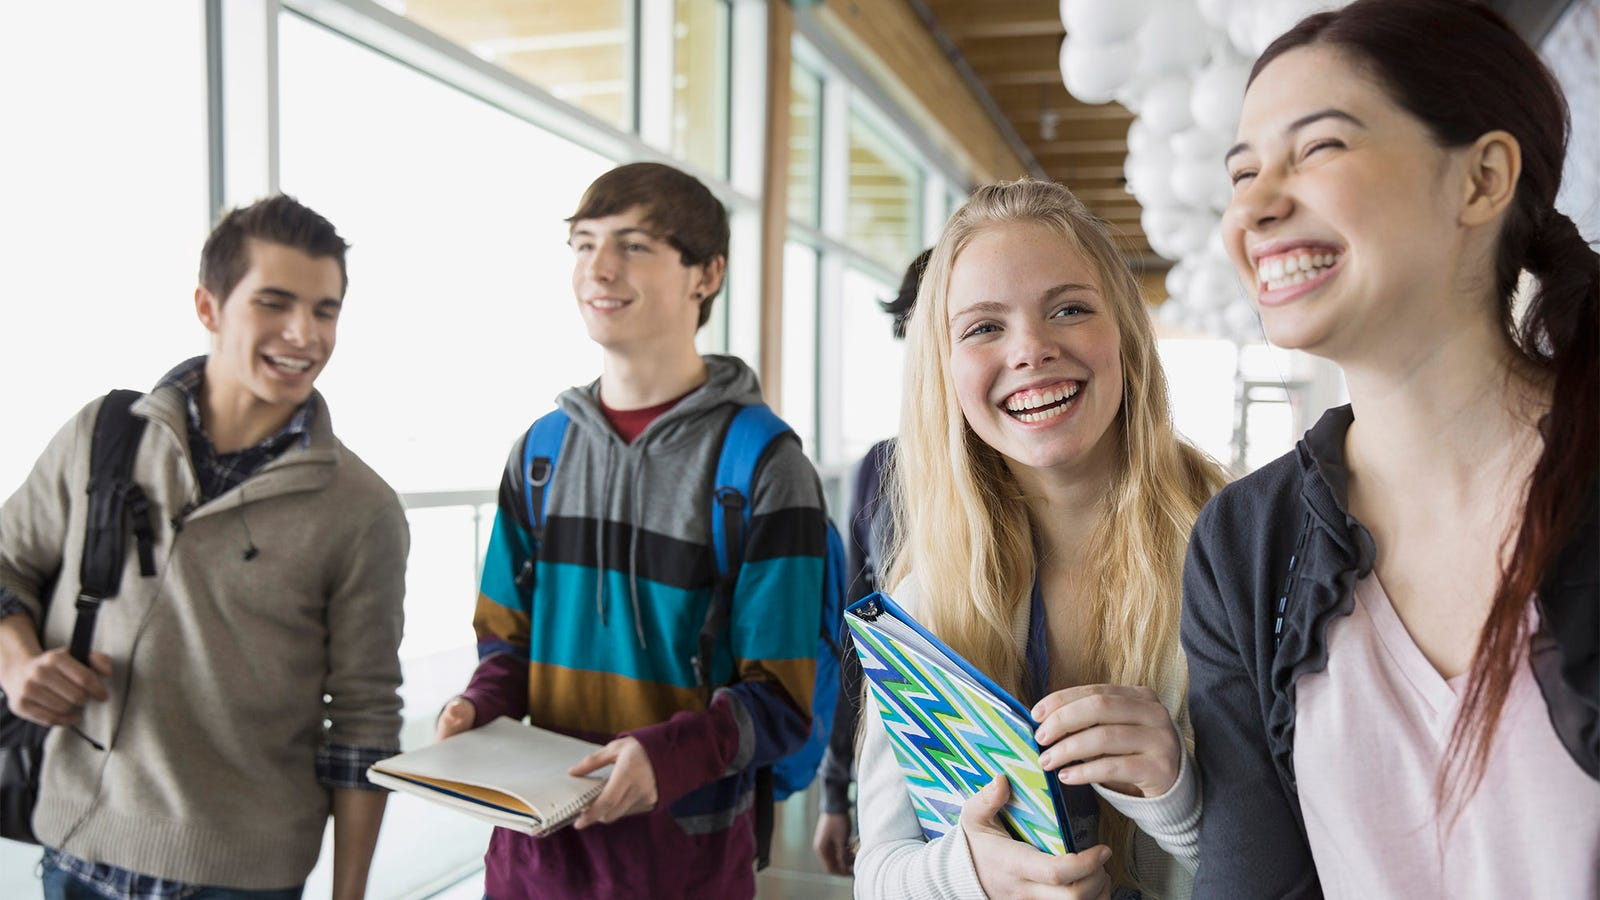 Innocuous Thing You Did In Public Prompts Inside Joke That Bonds Group Of Teens For Life